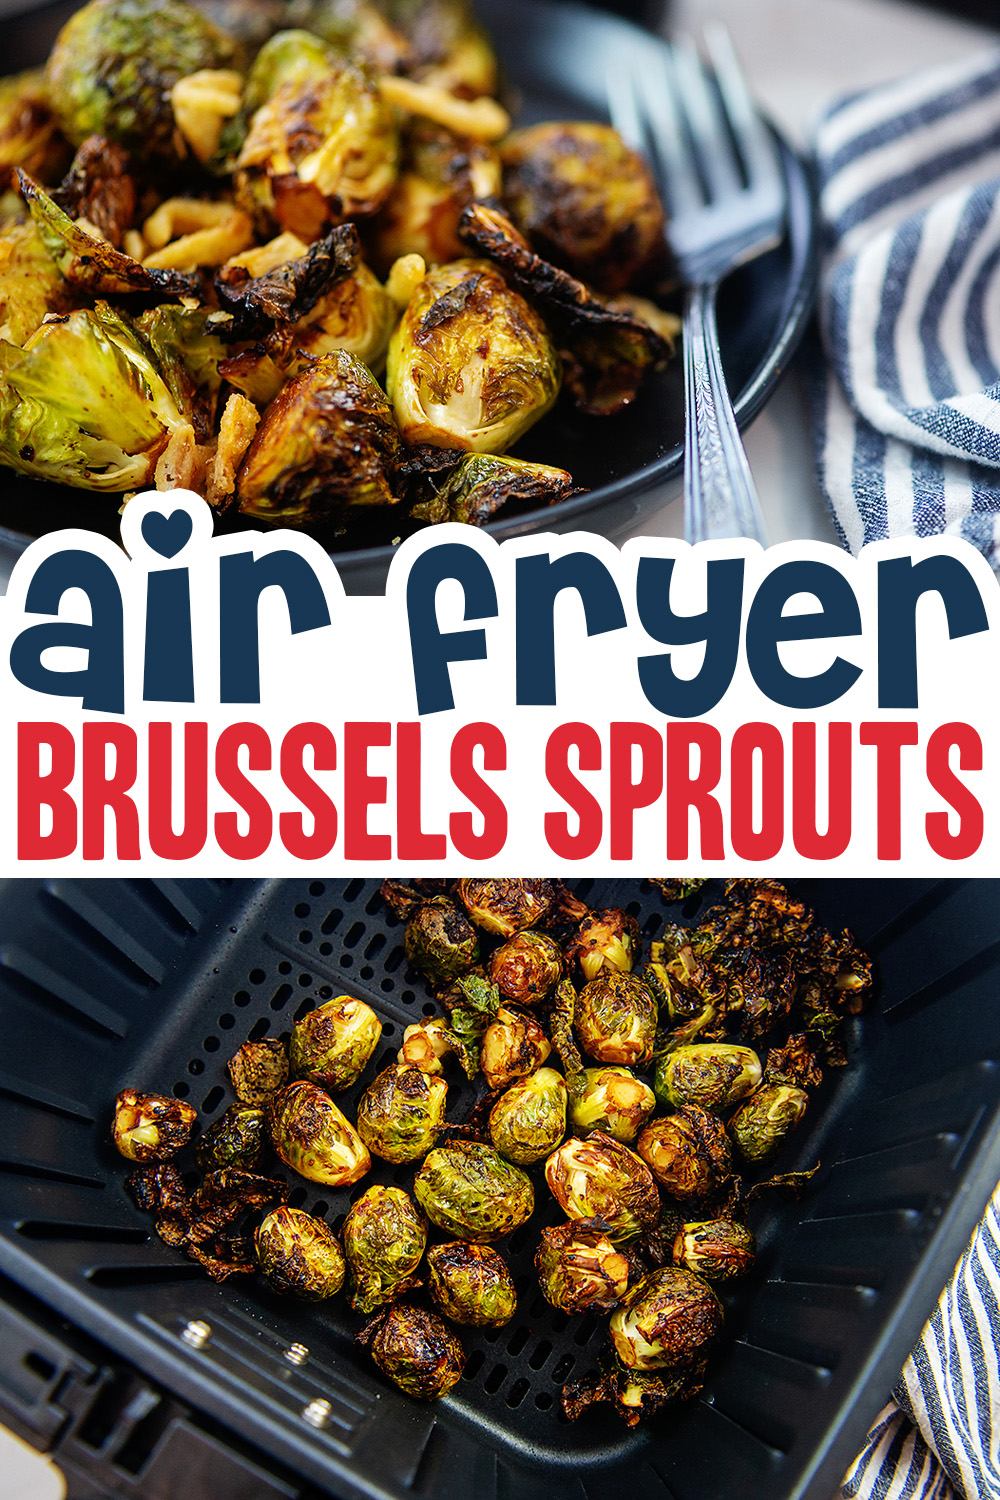 Our Asian Brussels sprouts recipe in the air fryer cooks in 15 minutes!